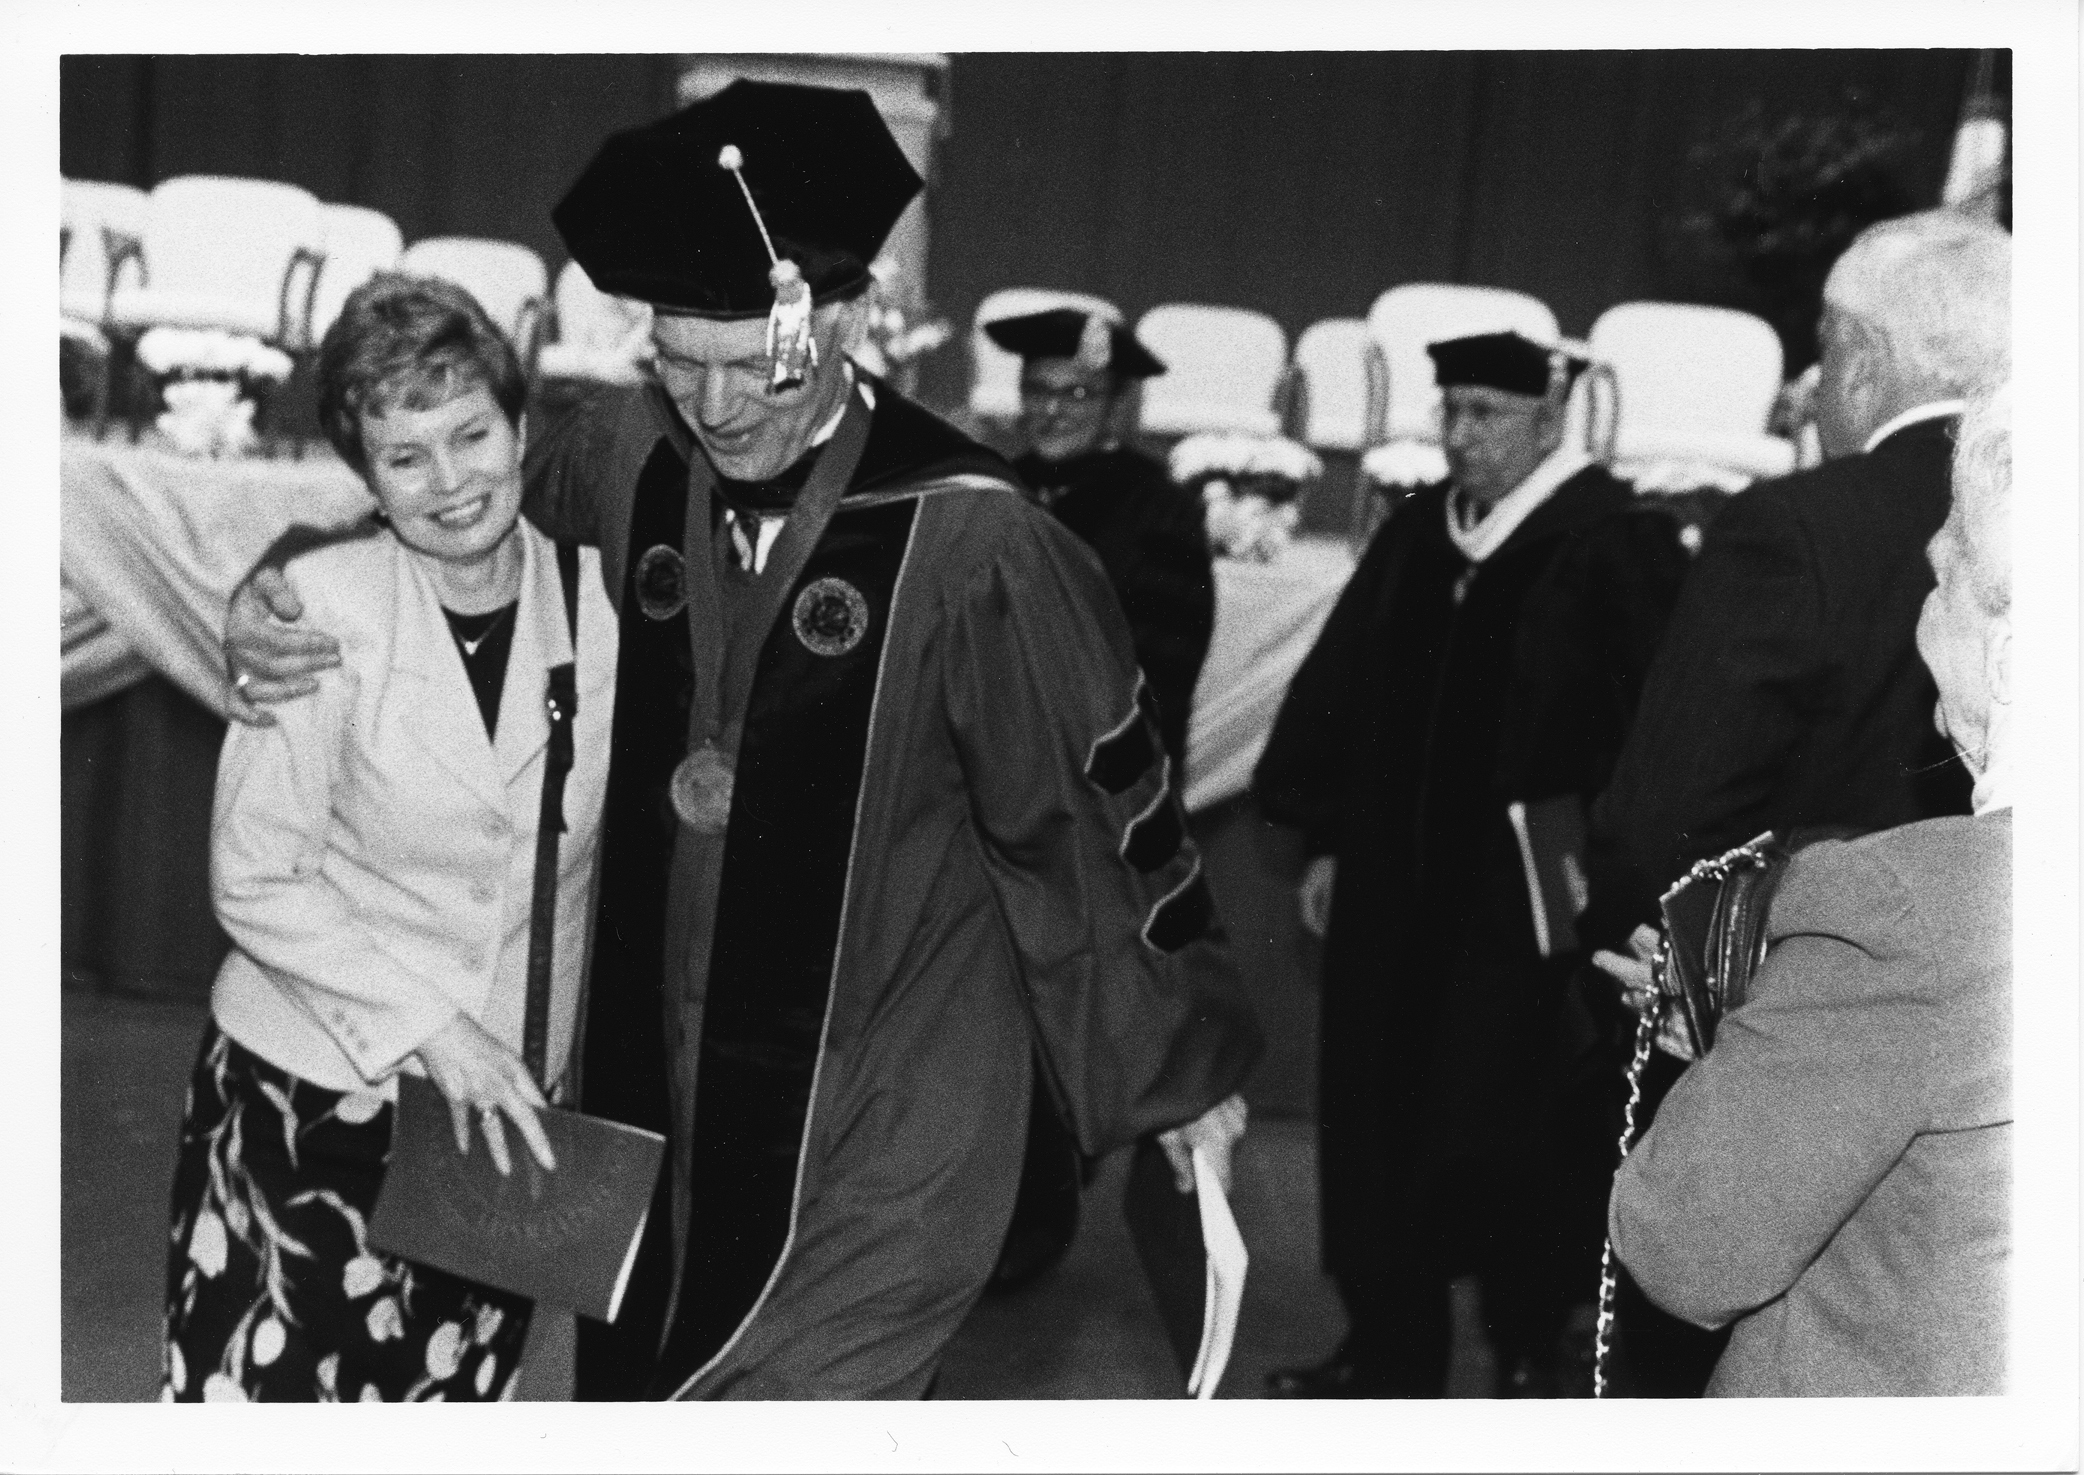 Dr. Alan G. Merten and wife, and Sally Merten at his inauguration, April 4, 1997